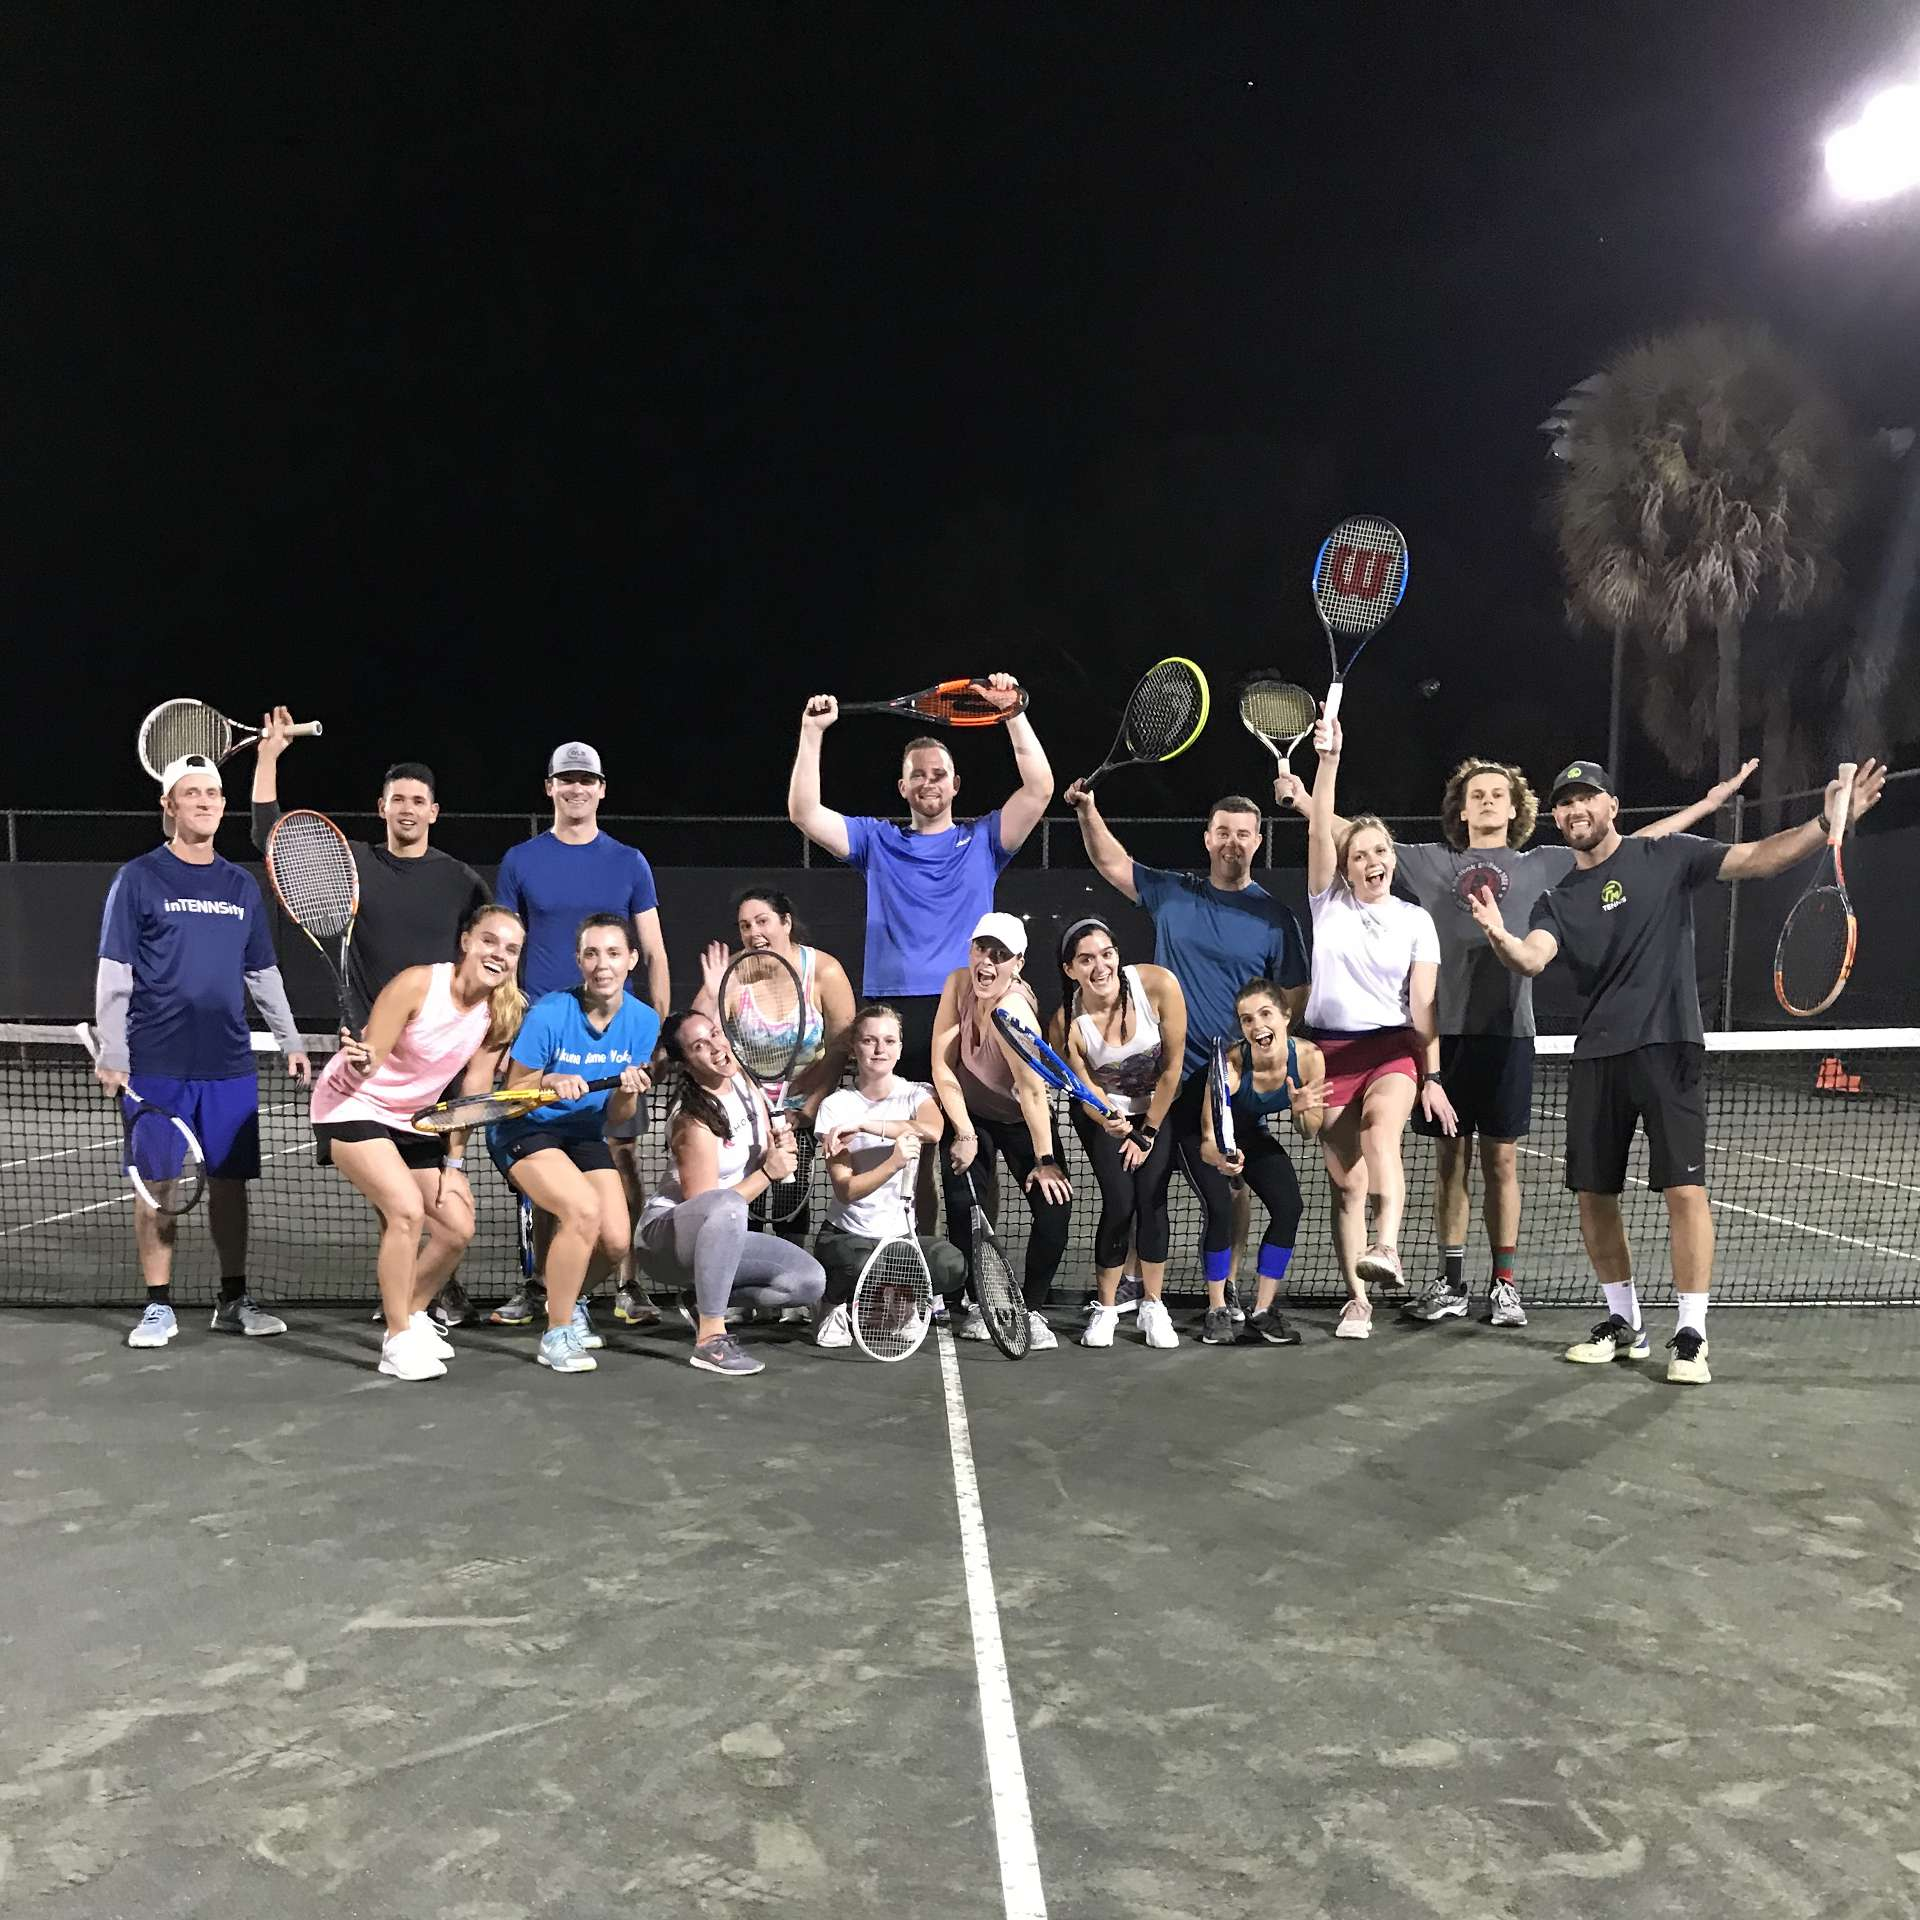 adult tennis players